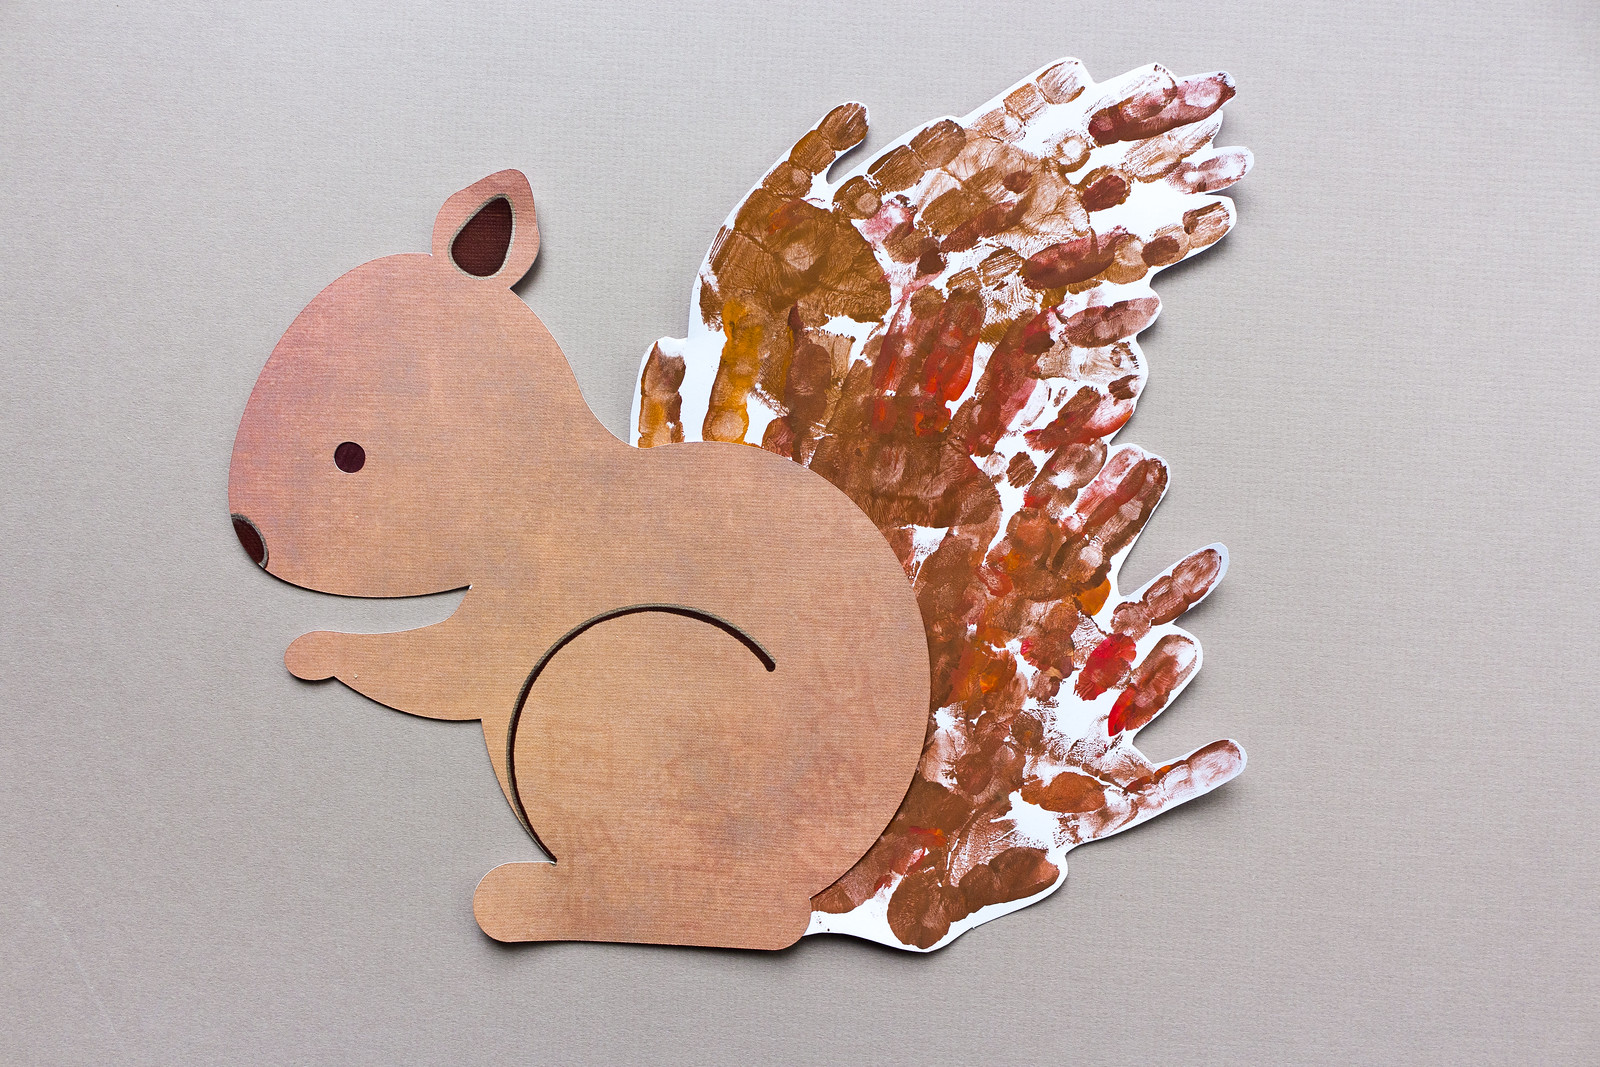 Handprint squirrel for a toddler and child activity. Free PDF and SVG files for hand or machine cutting are included.